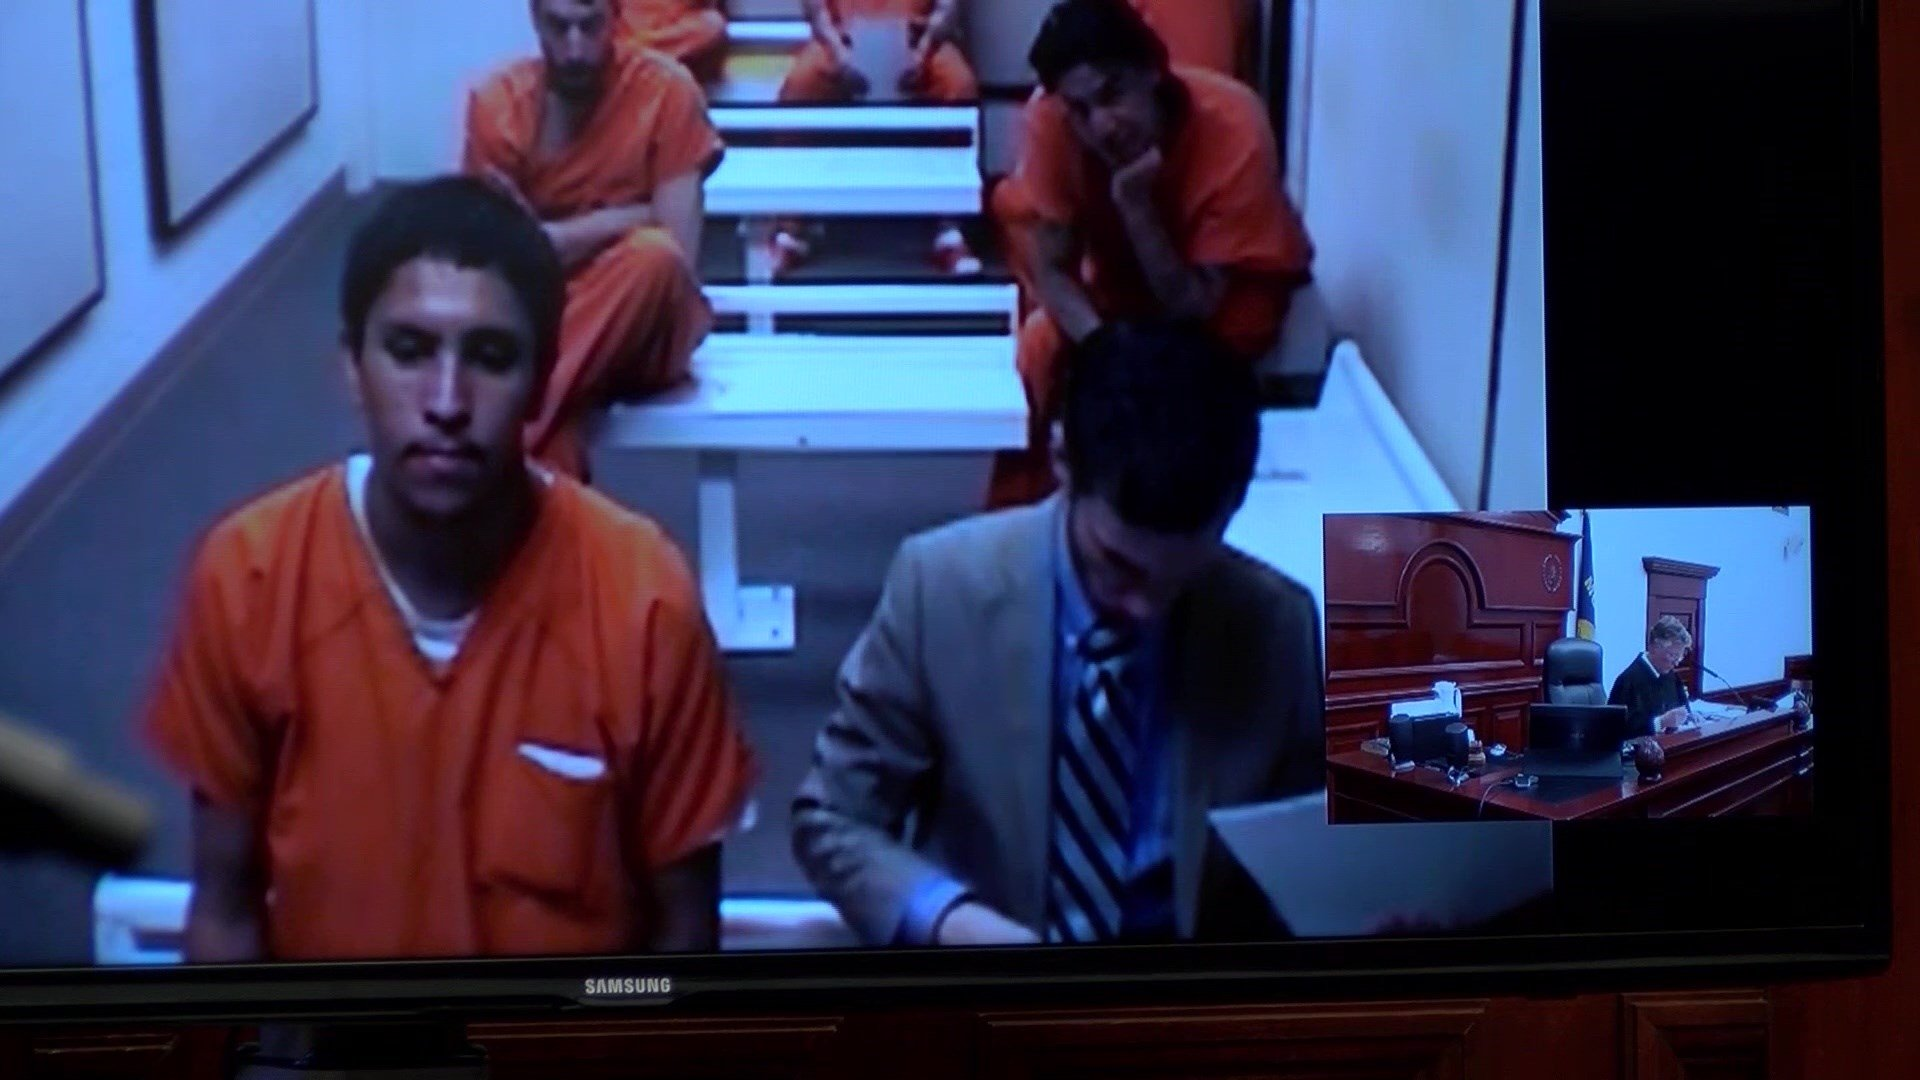 Bengamin Ray Yellowowl during his initial court appearance on January 26th